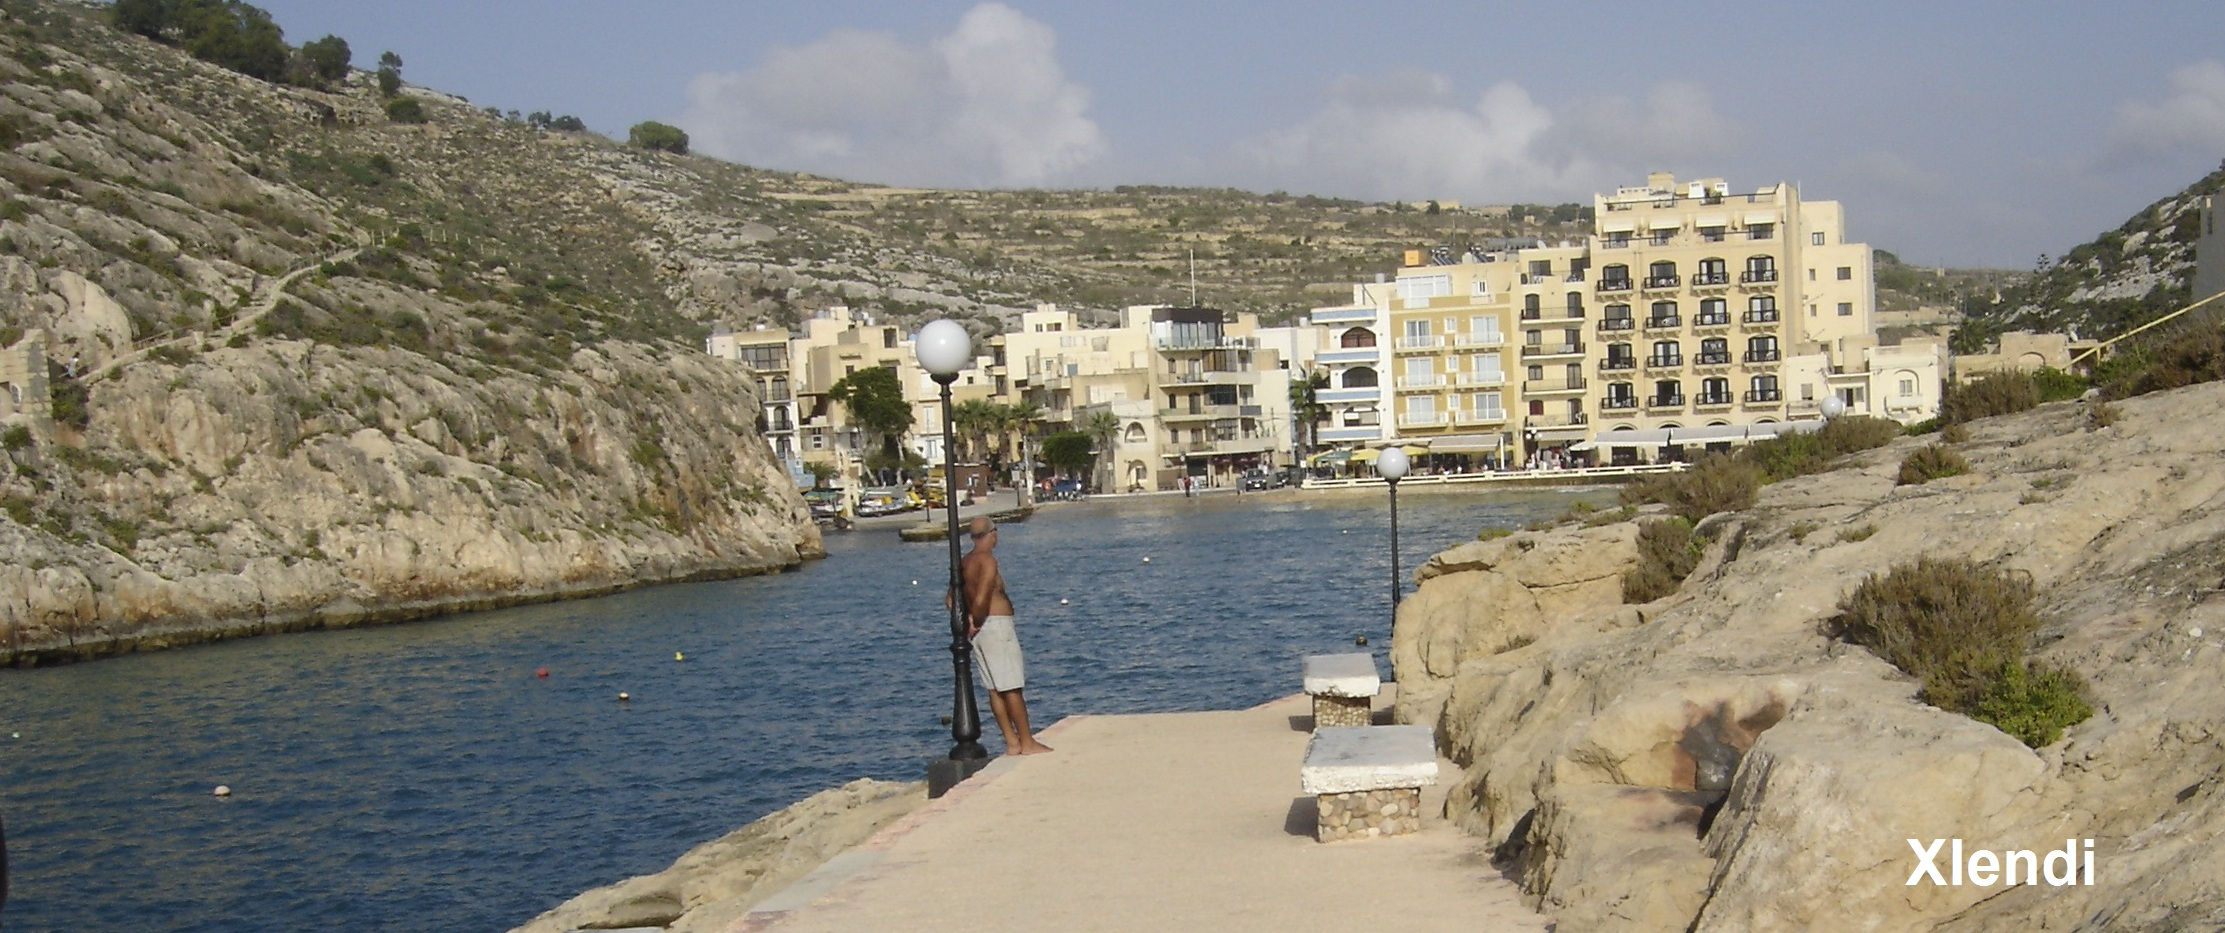 Path near Xlendi